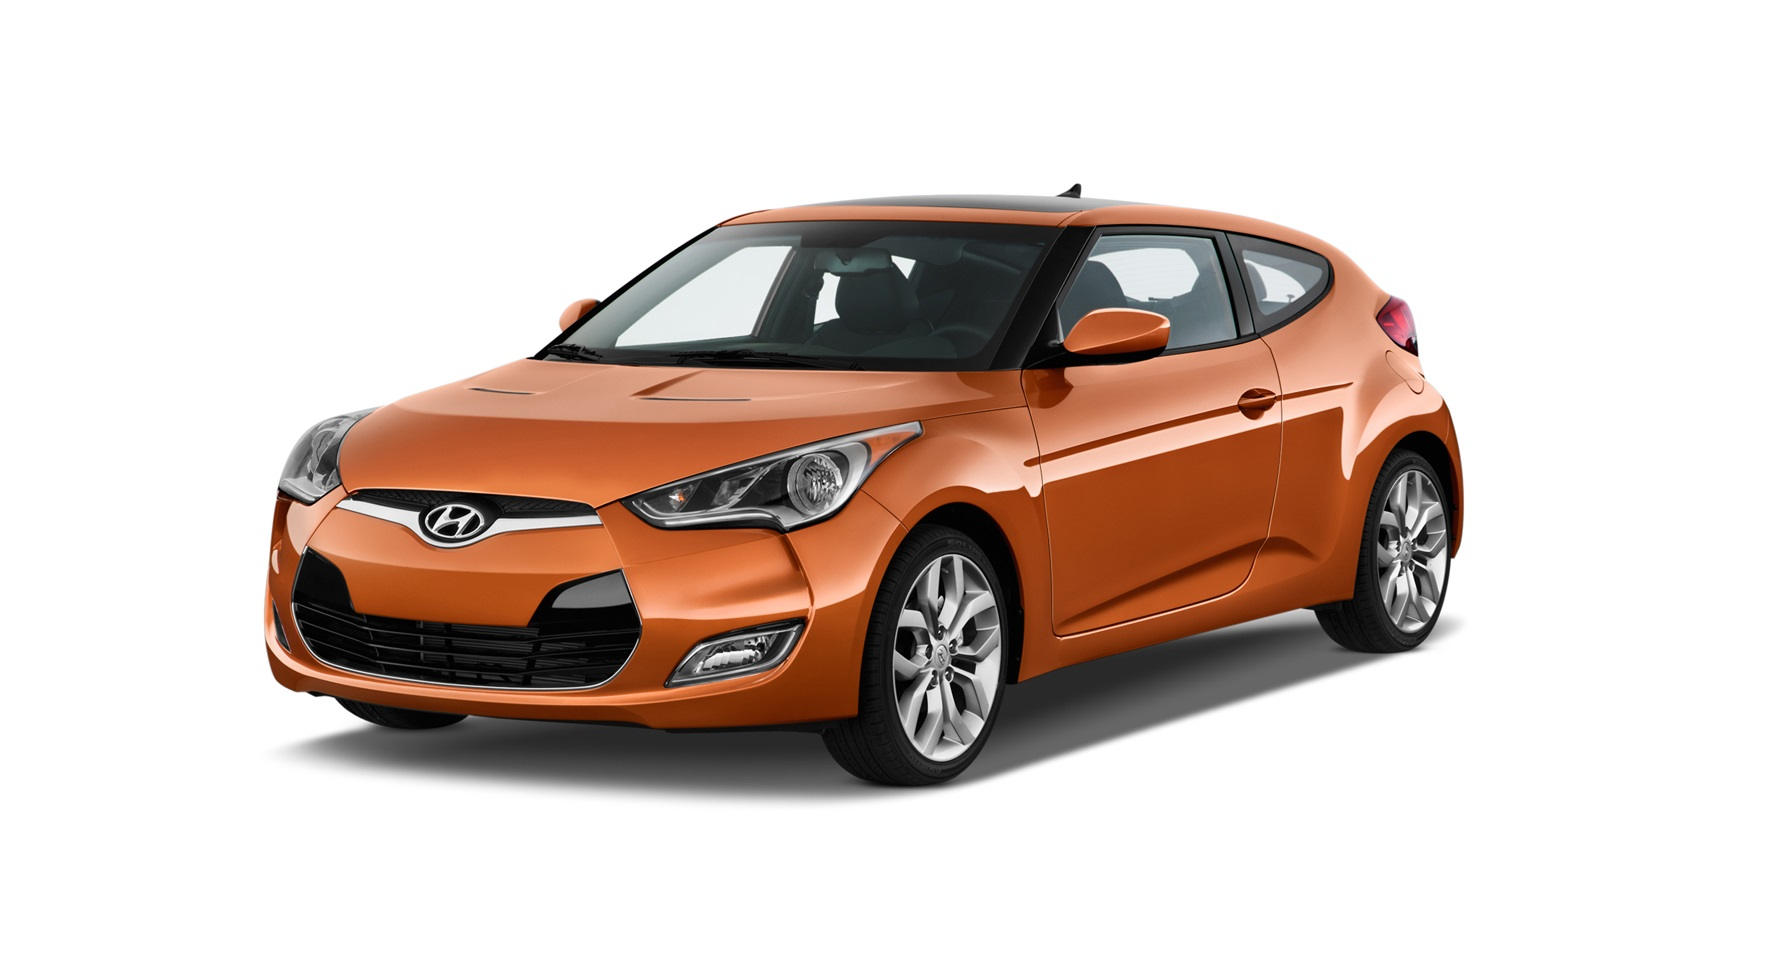 hyundai veloster price in bahrain new hyundai veloster photos and specs yallamotor. Black Bedroom Furniture Sets. Home Design Ideas